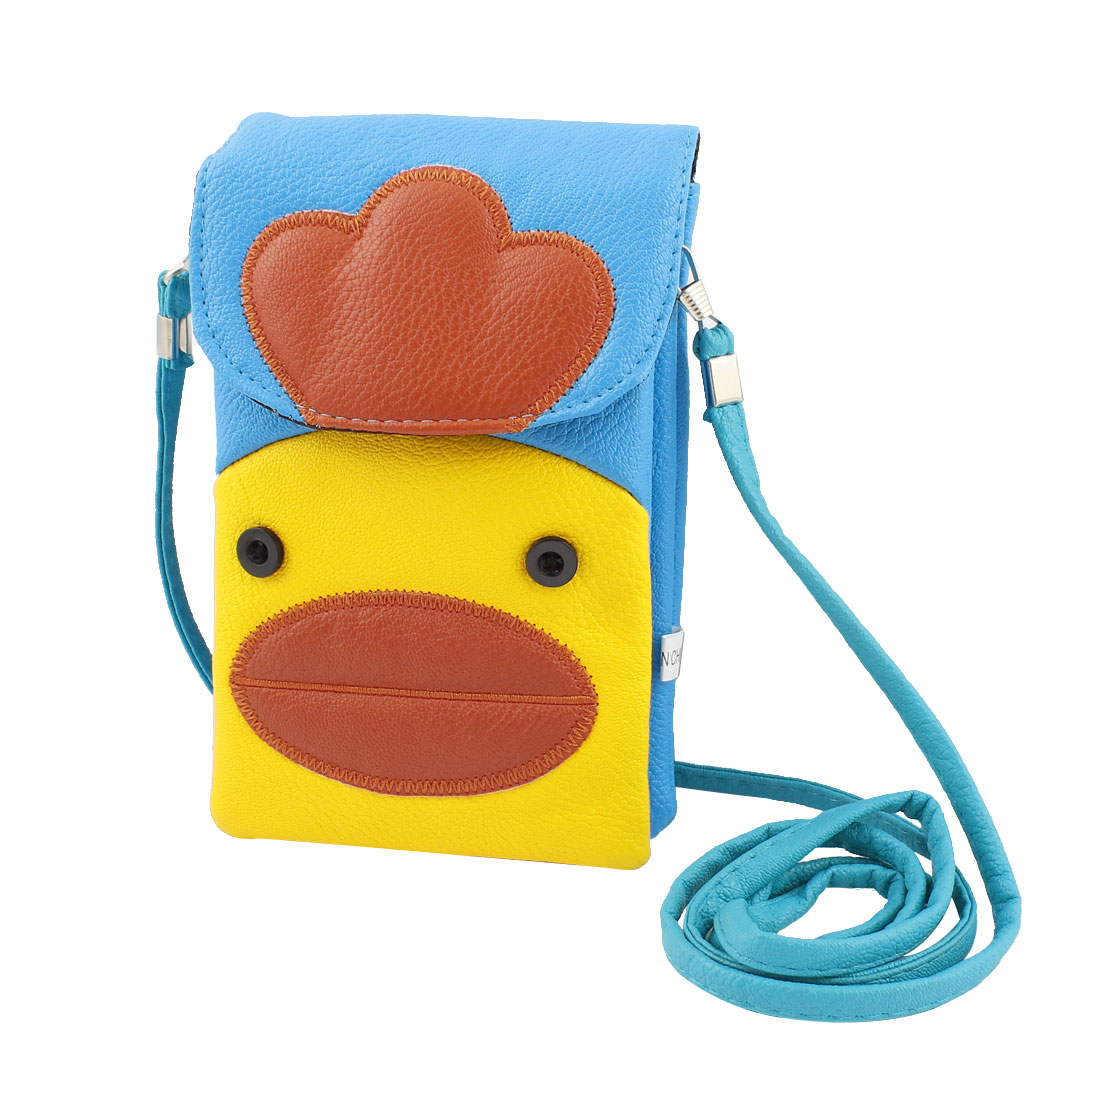 Faux Leather Duck Pattern Shoulder Pouch Bag Multicolor for Phone Camera